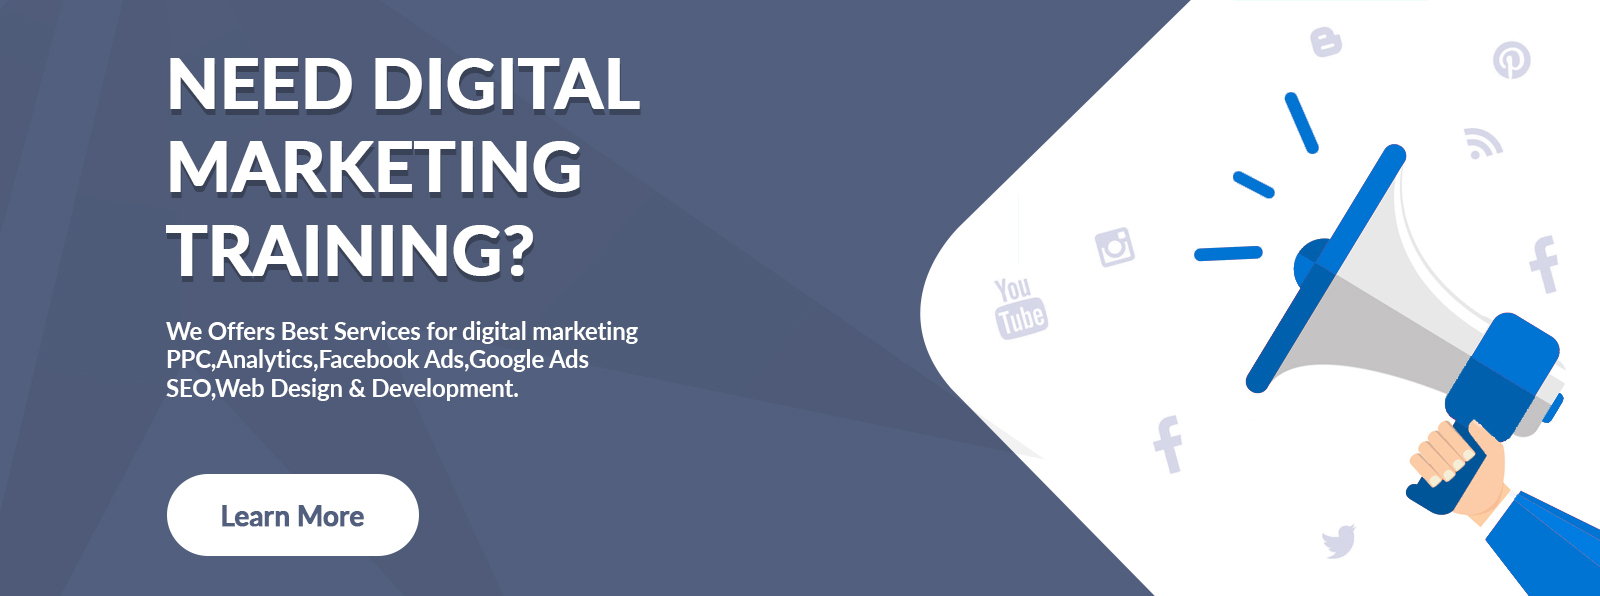 need digital marketing training